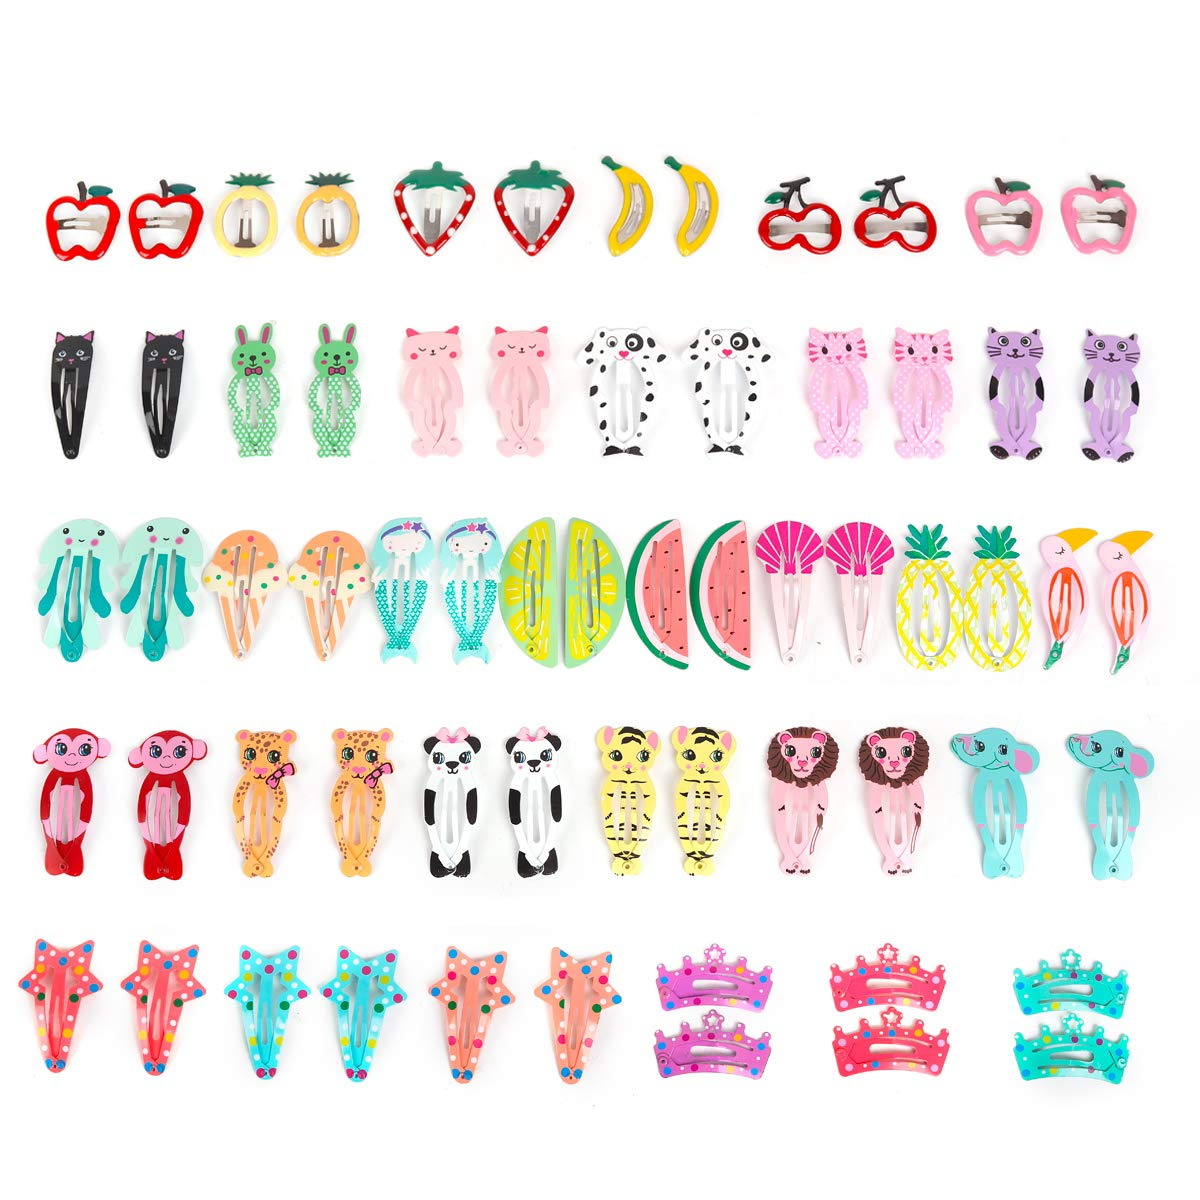 64 Pcs Baby Girls Hair Clips Animal Pattern Print Girls' Metal Snap Hair Clips Hair Accessories for Kids Toddlers Girls